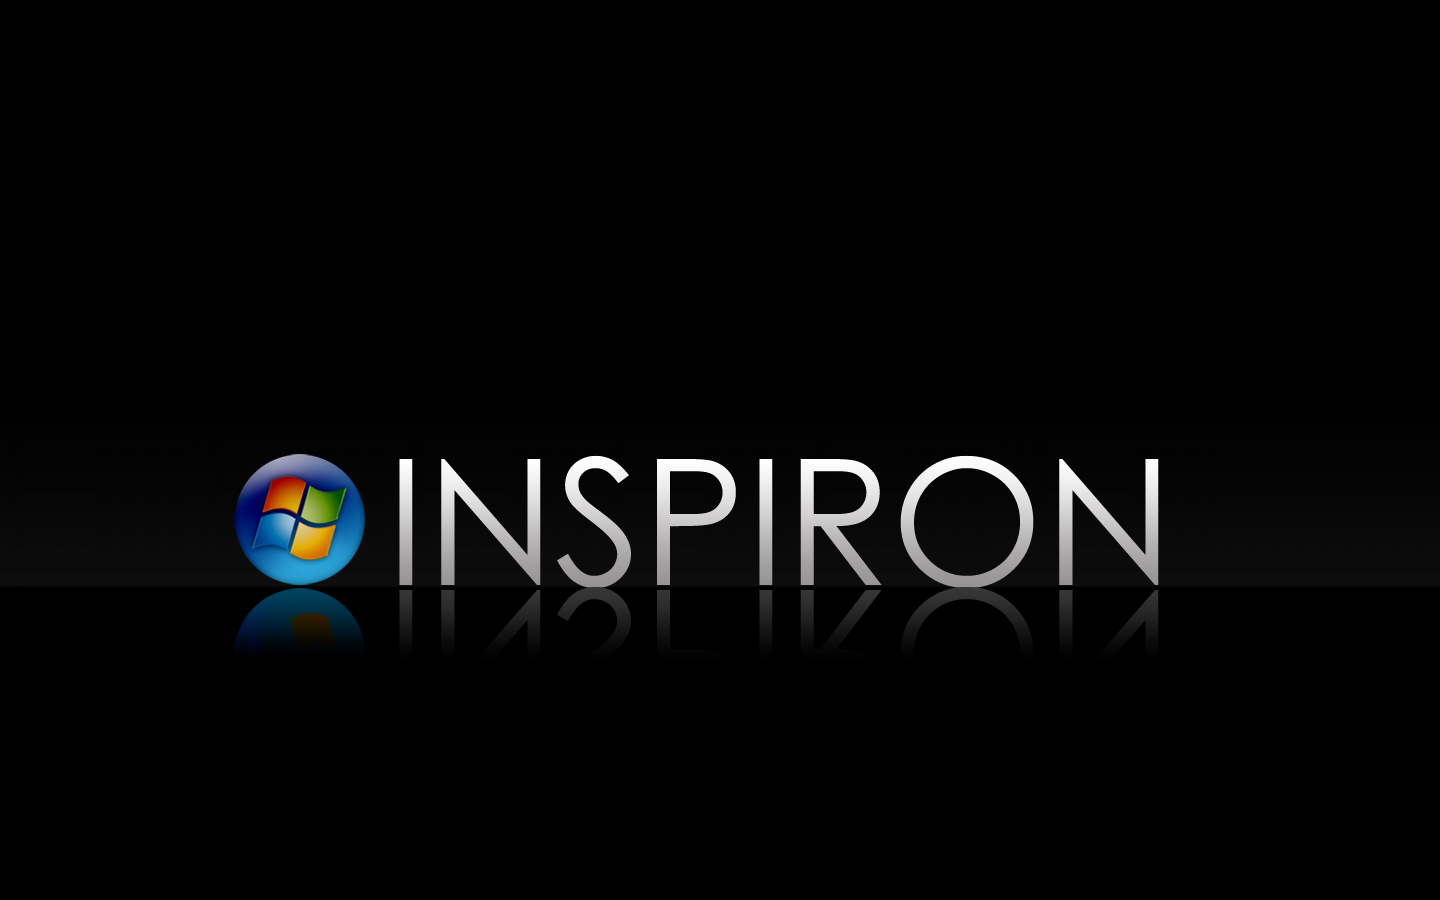 Group Of Dell Inspiron Wallpaper 3460